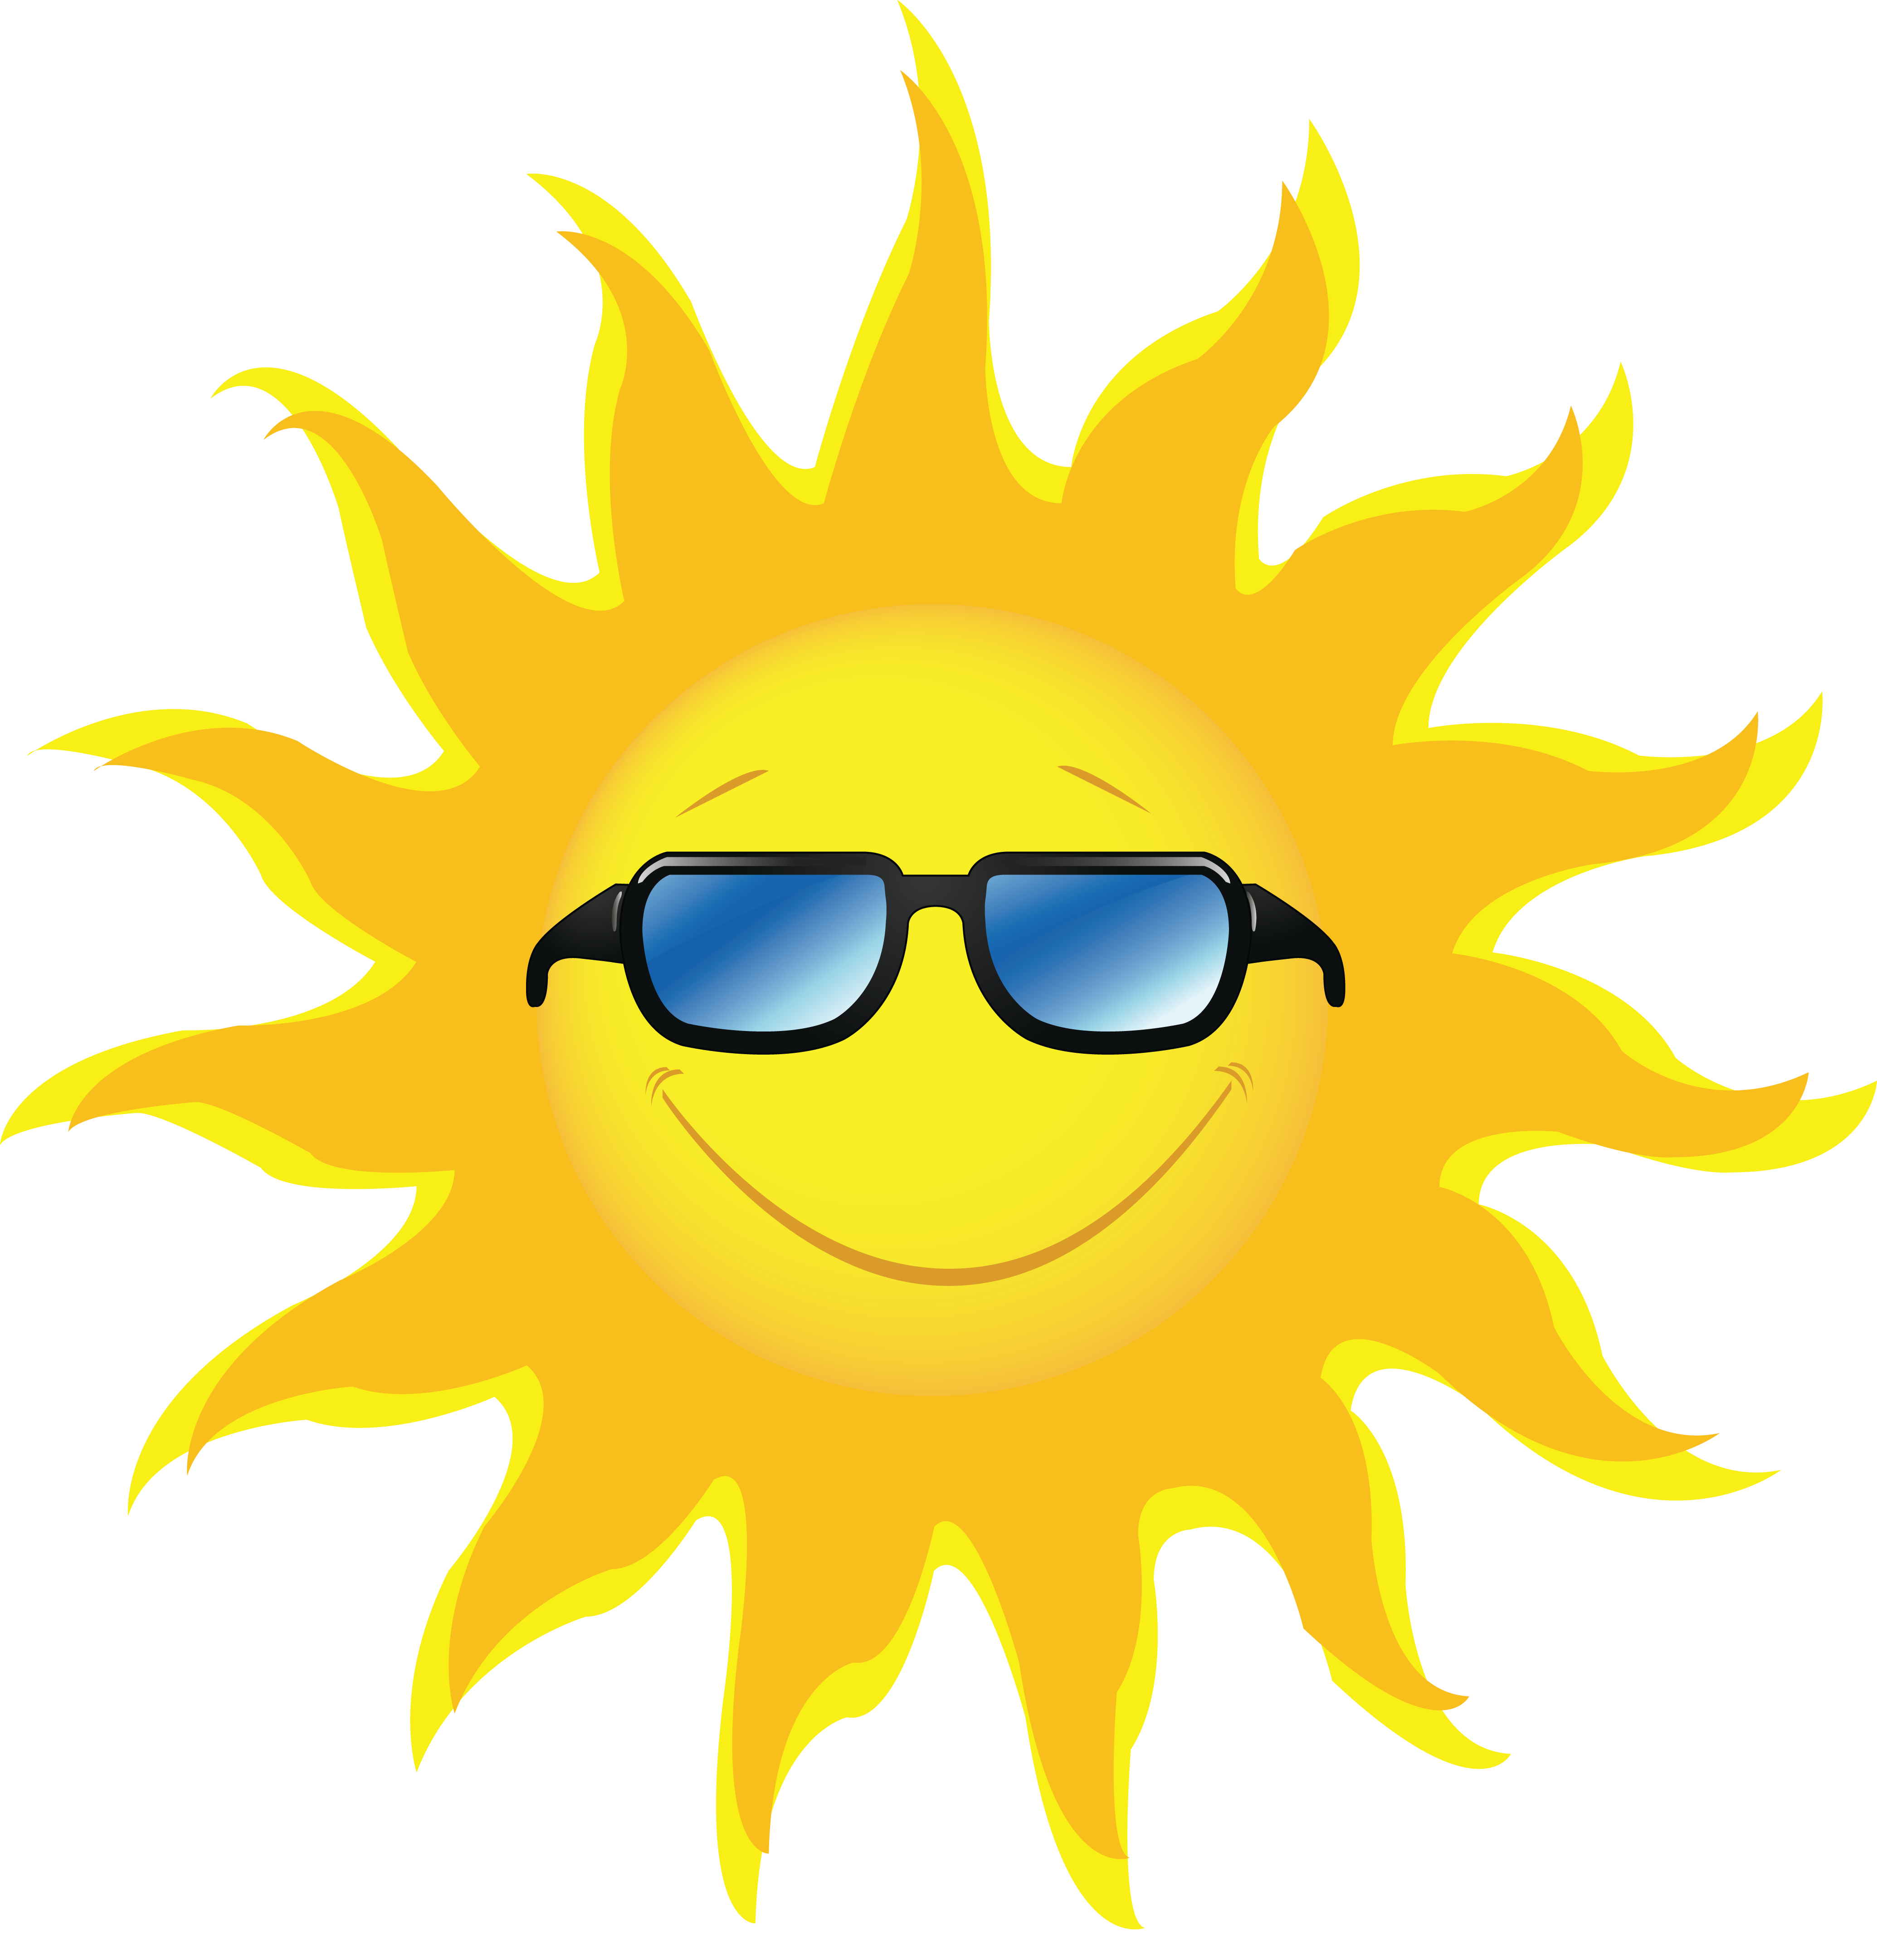 Faded sun clipart. Png best images real